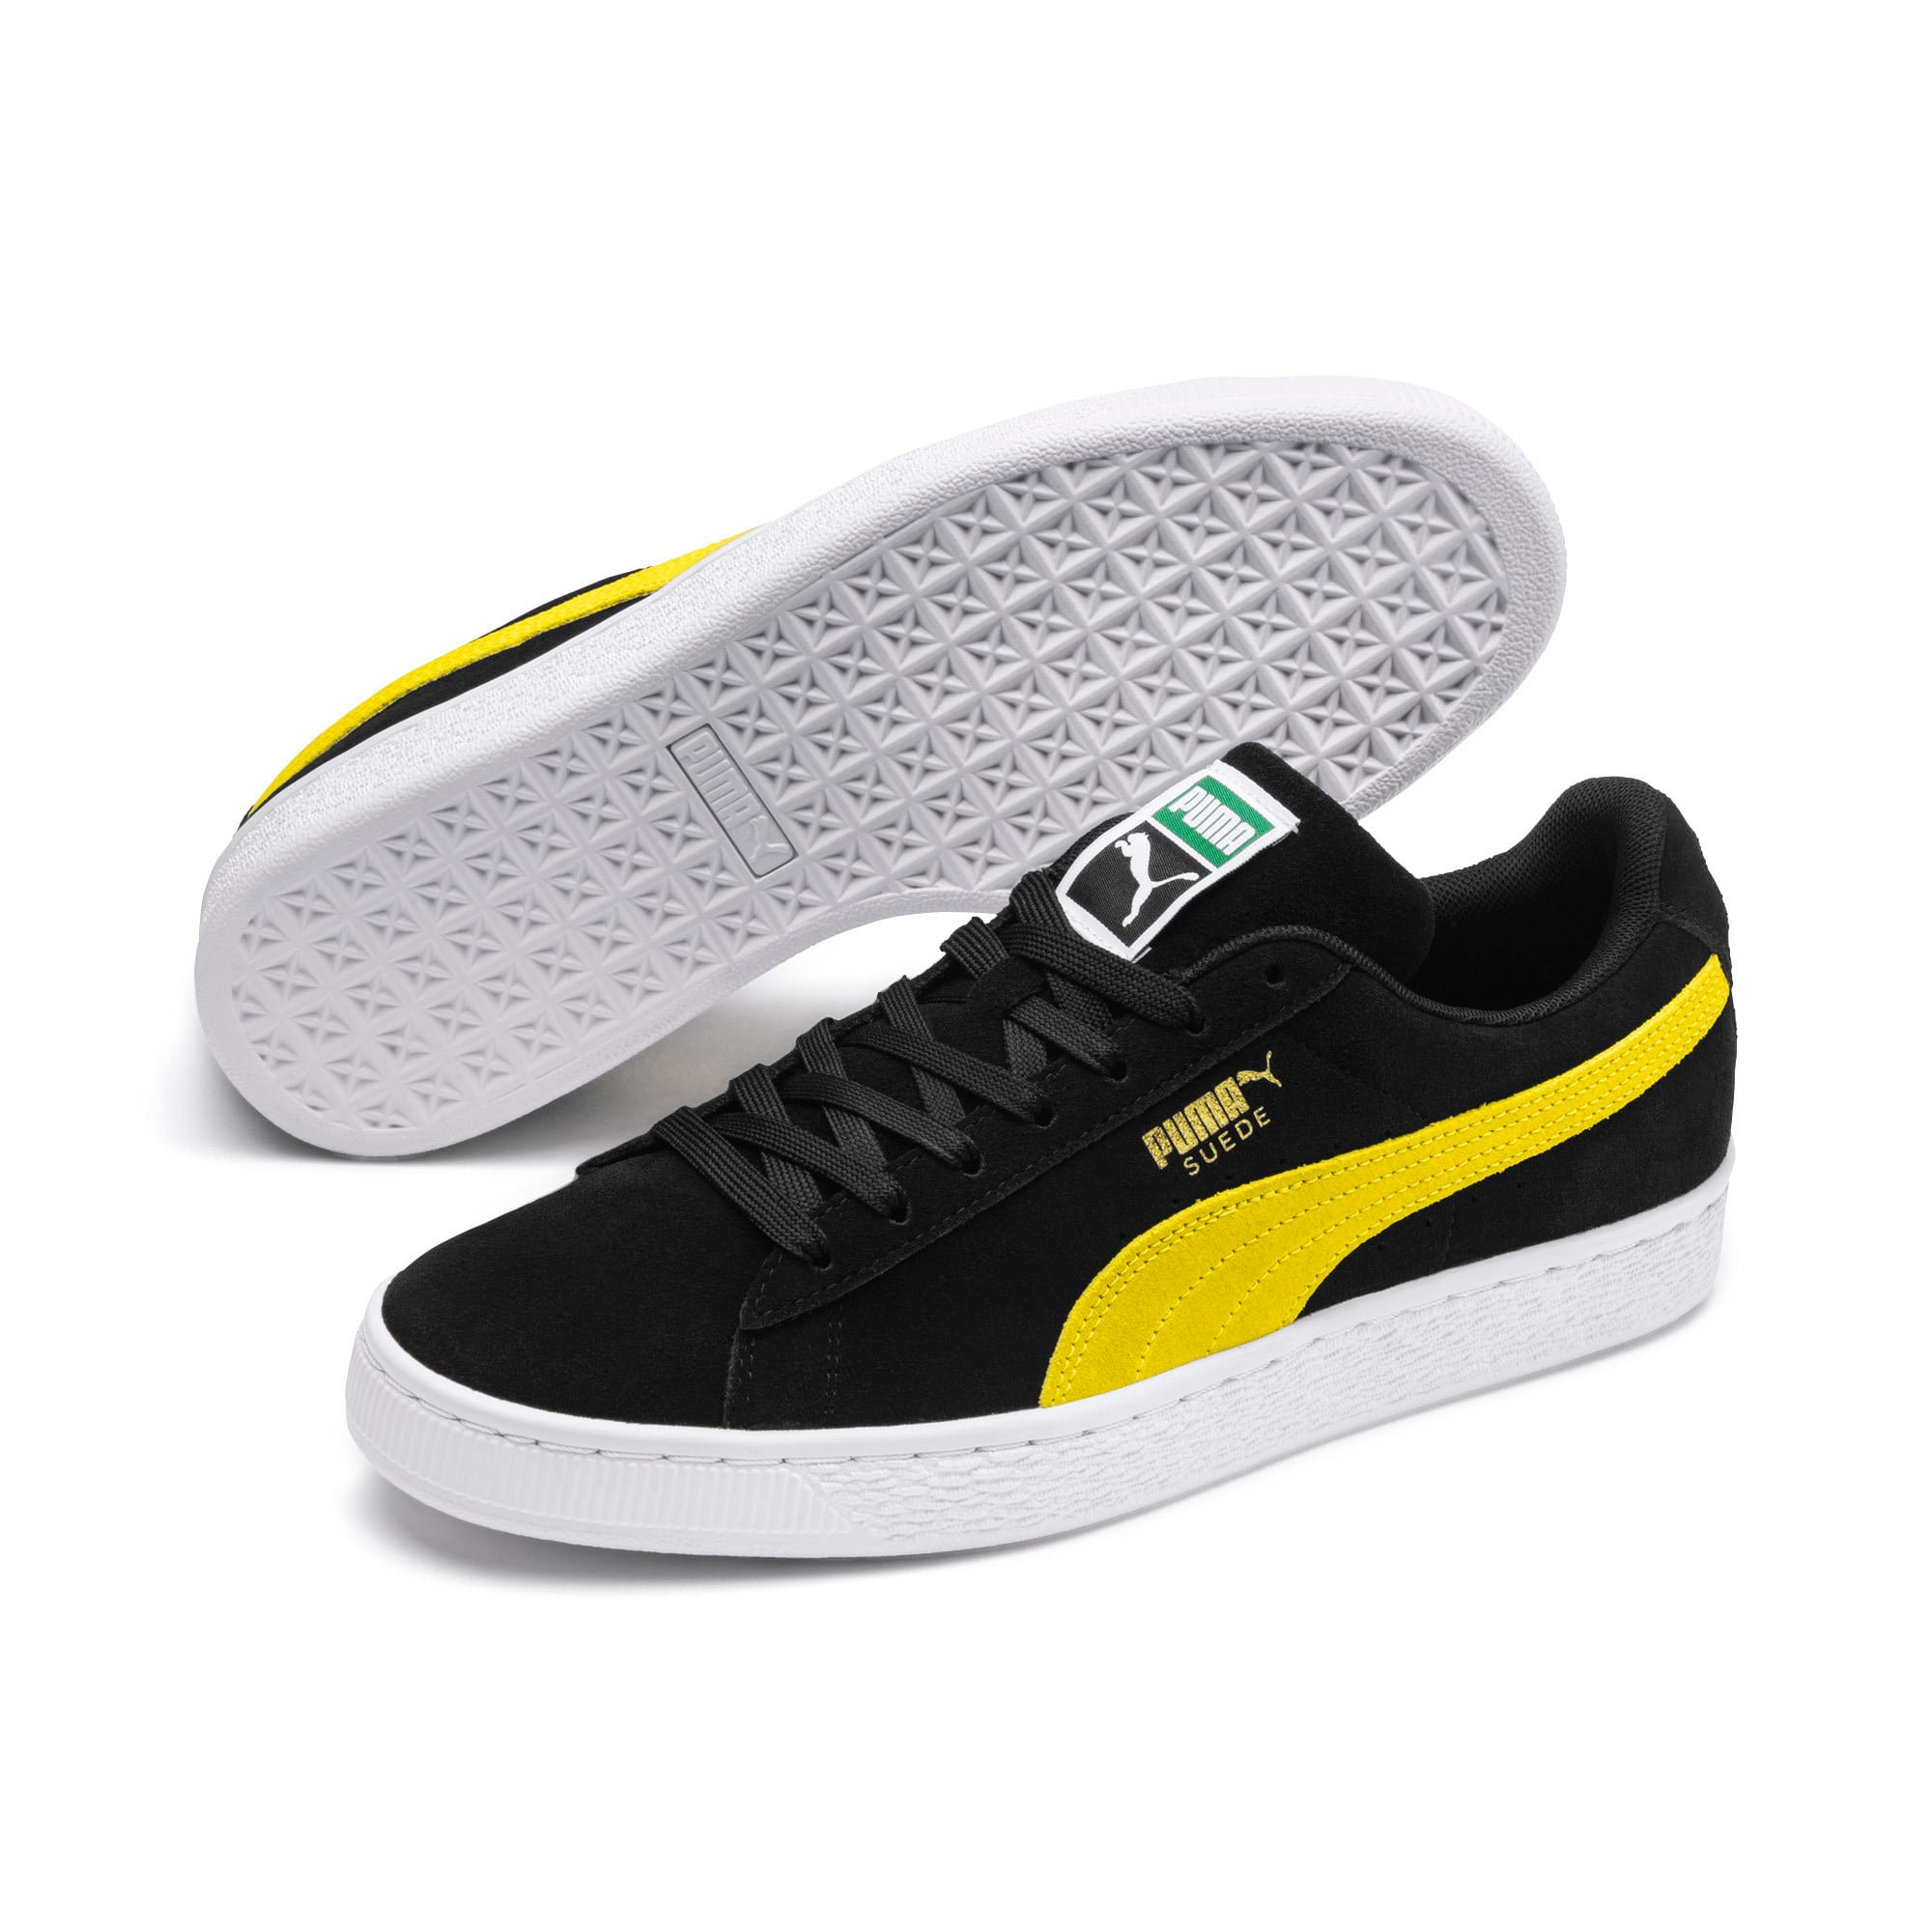 Thumbnail 2 of Suede Classic Trainers, Puma Black-Blazing Yellow, medium